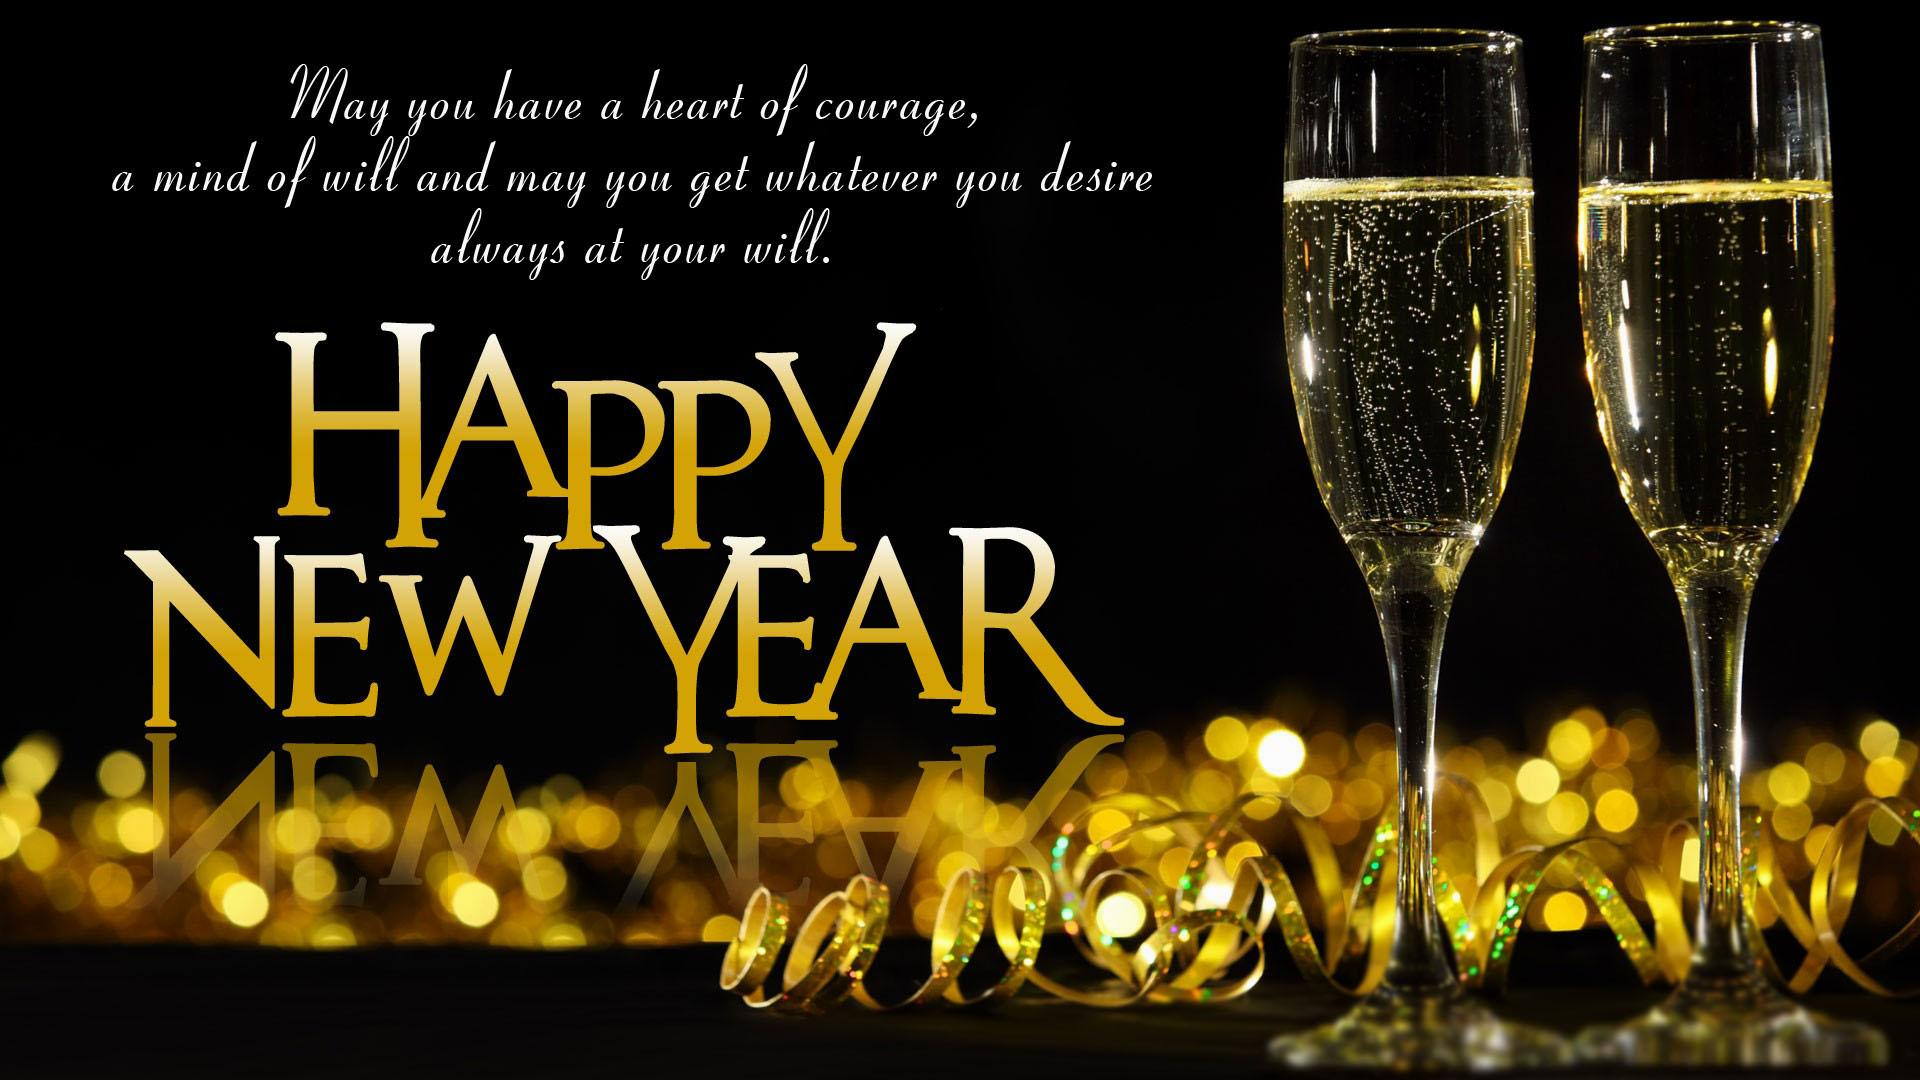 Hny 2020 Happy New Years Eve Quotes Sayings Wishes Whatsapp